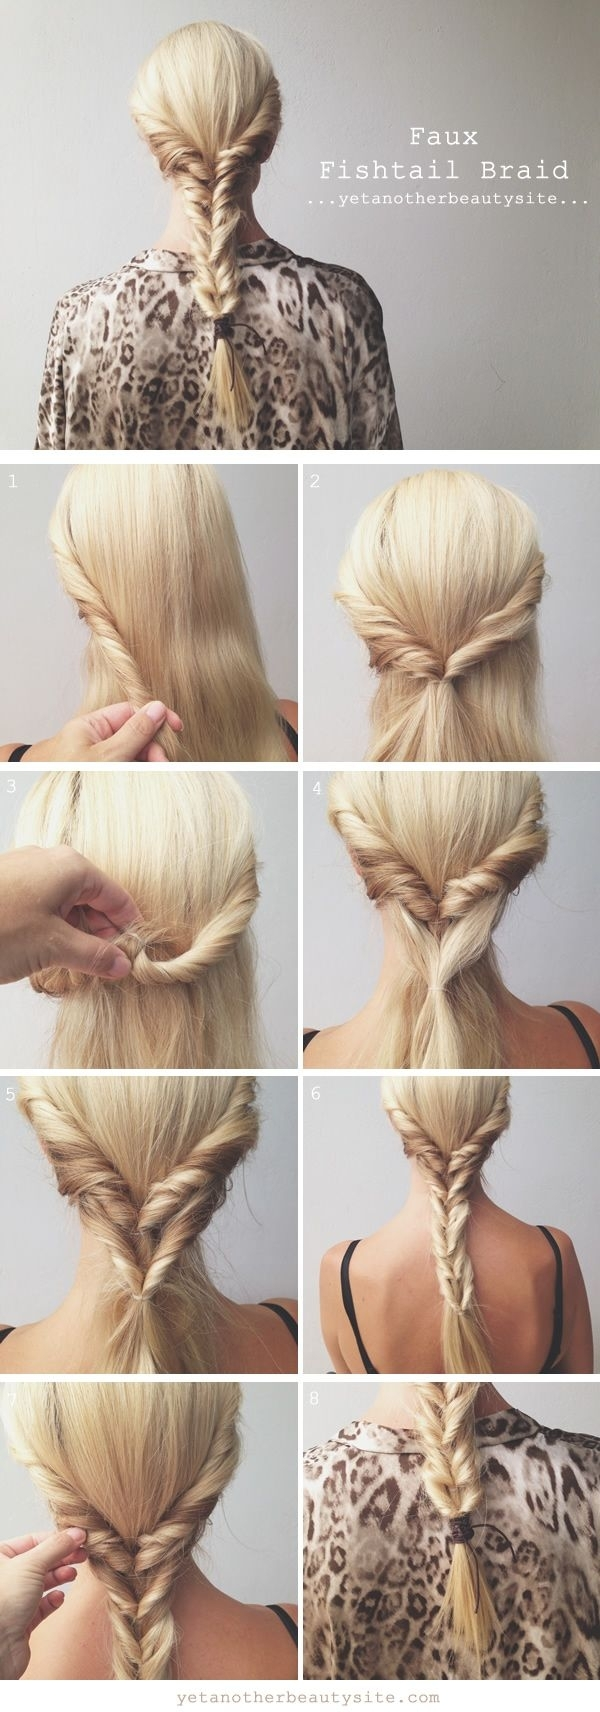 what about a fishtail braid?